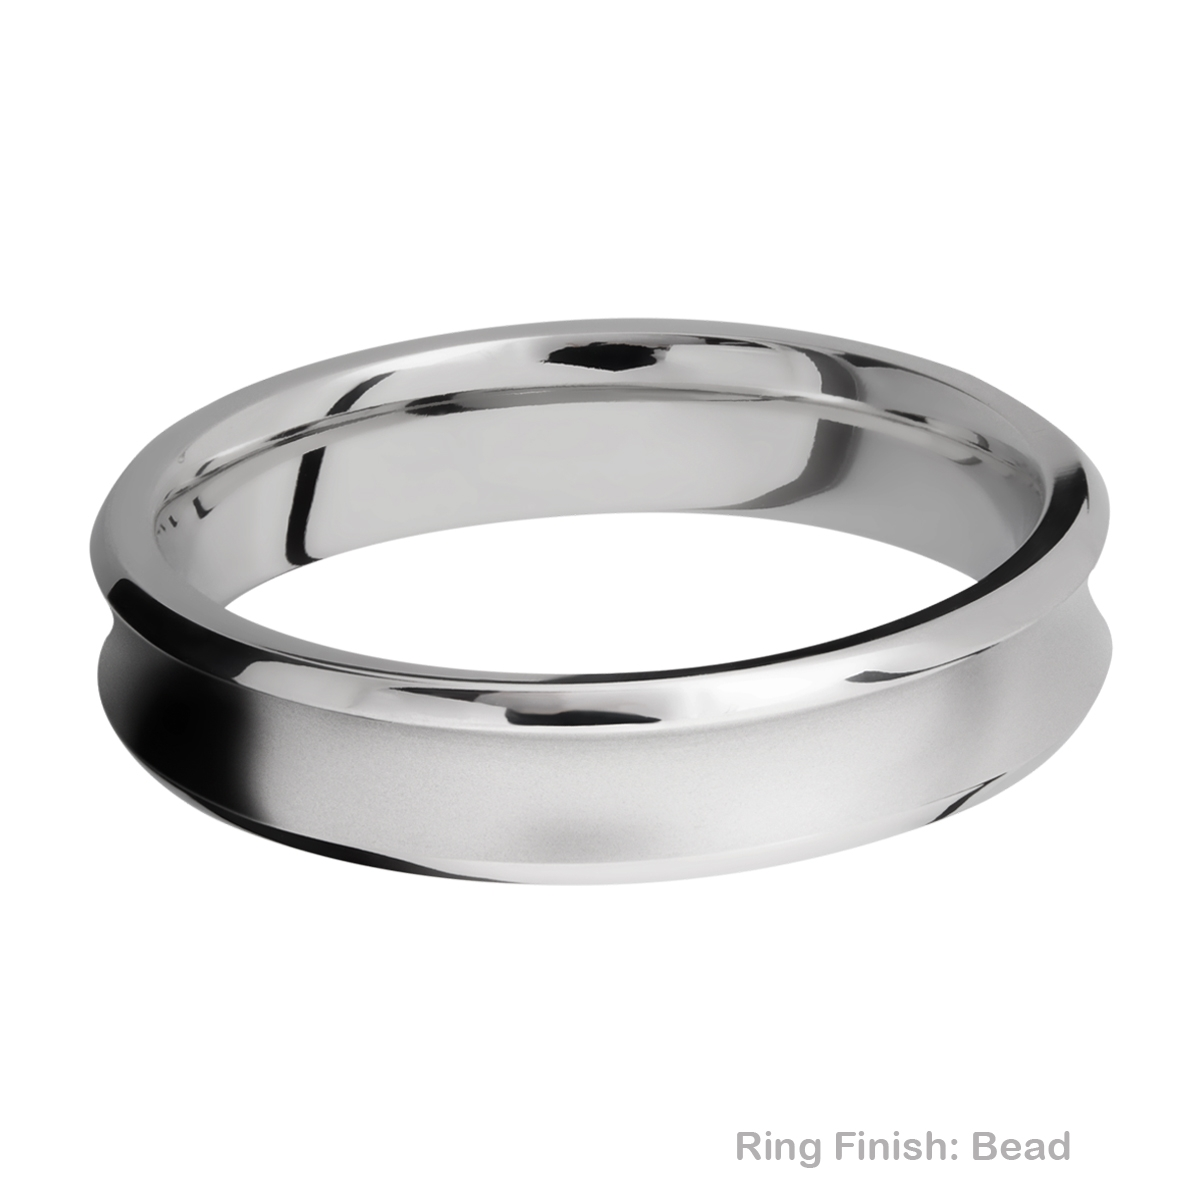 Lashbrook CC5CB Cobalt Chrome Wedding Ring or Band Alternative View 3